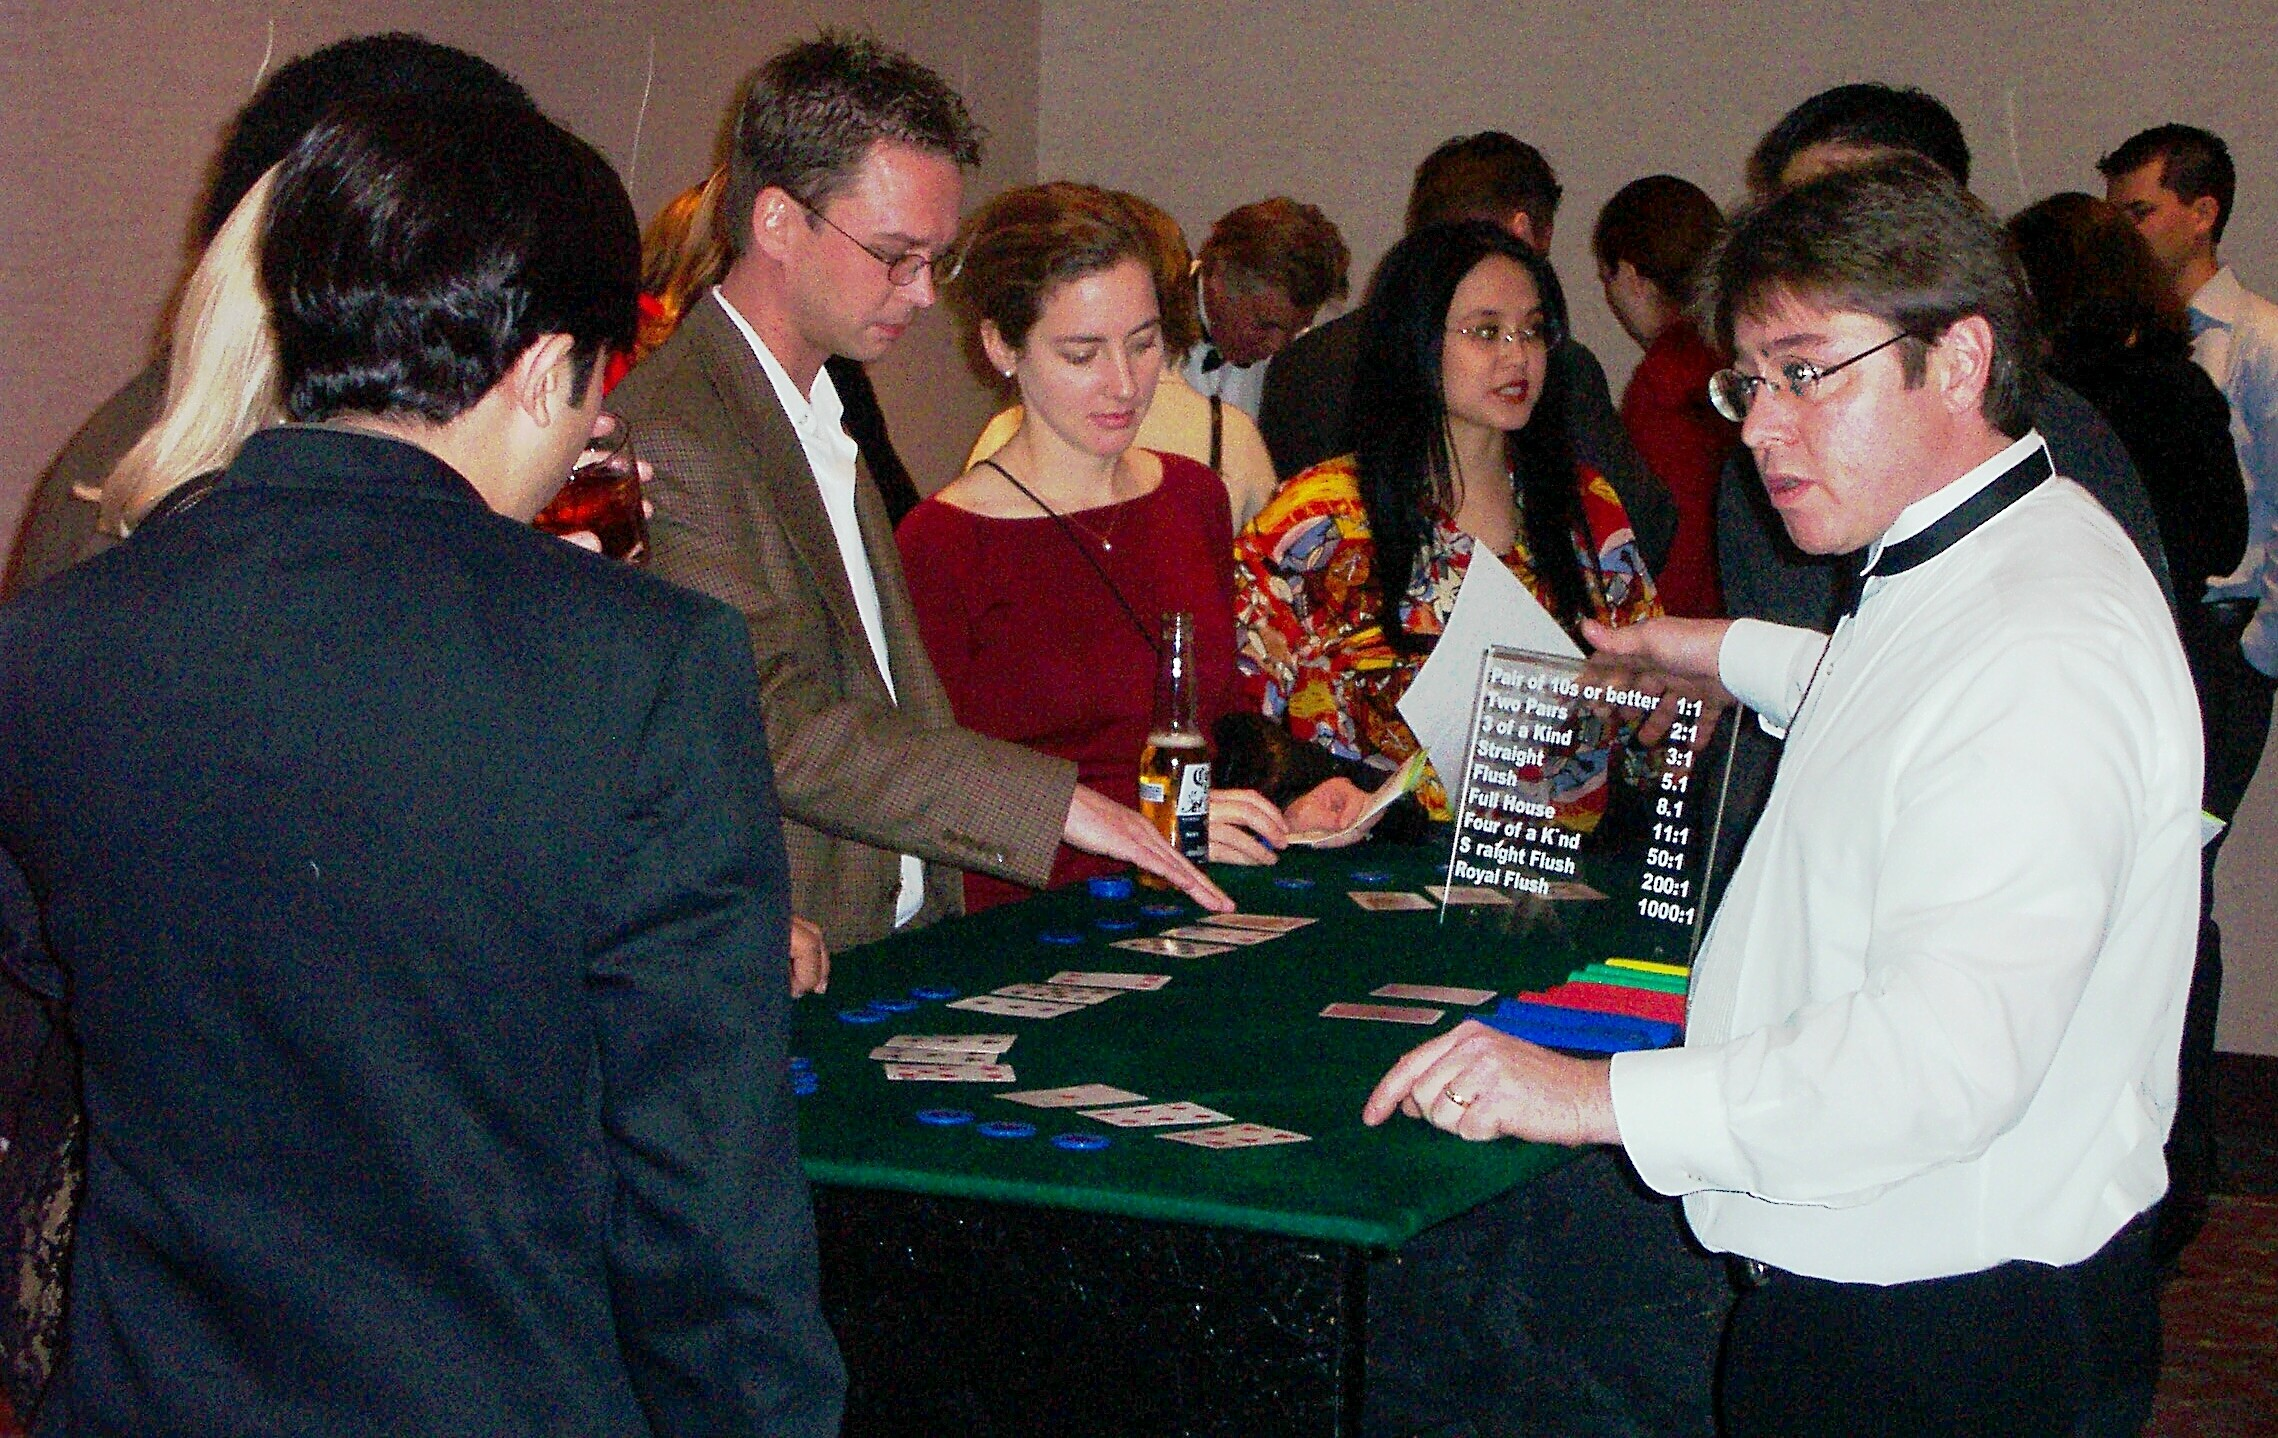 Casino Party guests learning to play